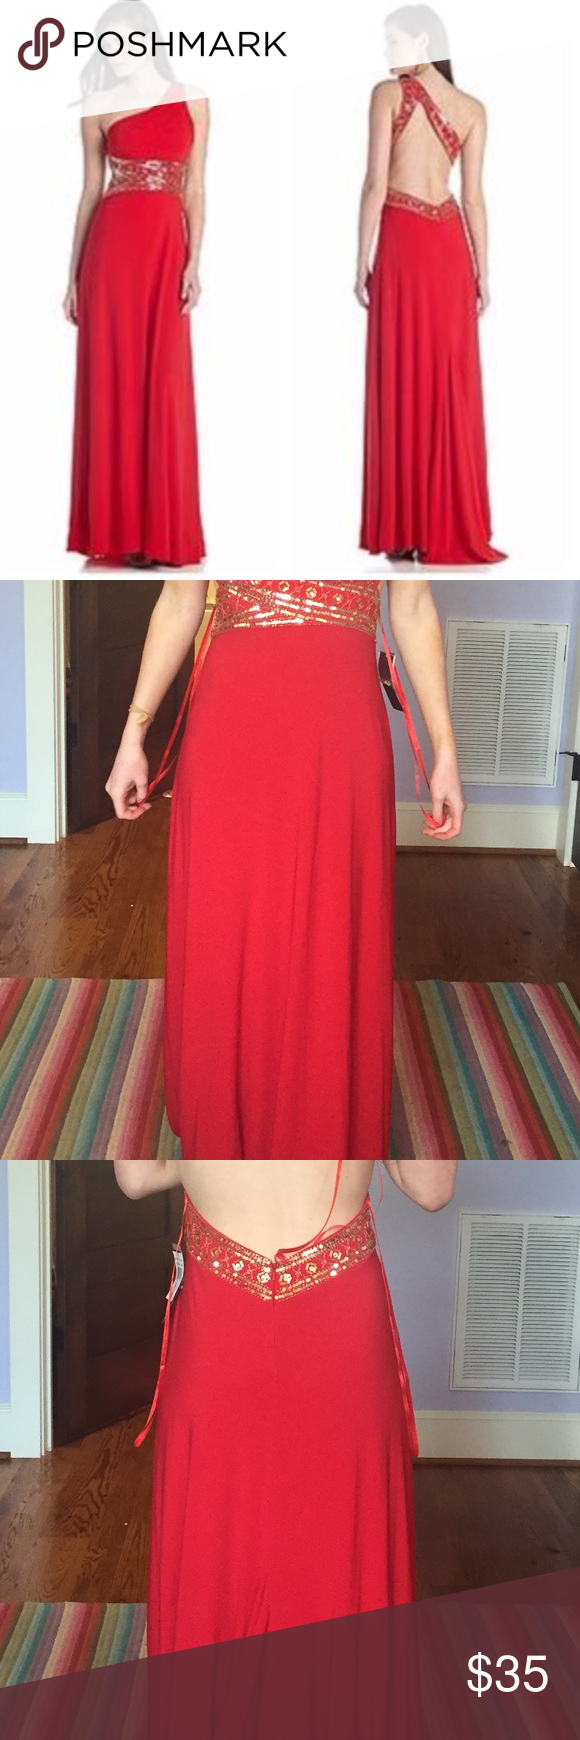 Betsy and adam red prom dress size dress prom prom and sequins